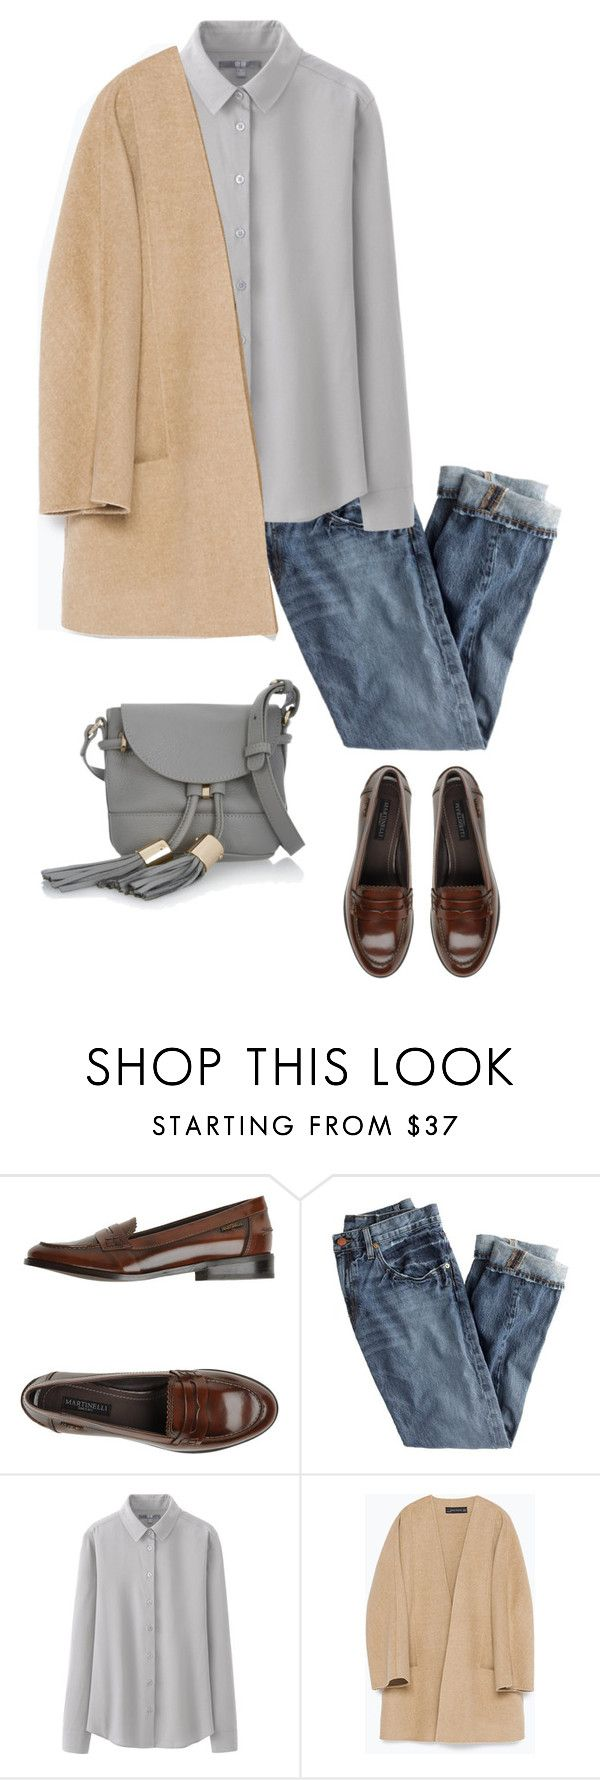 """Untitled #609"" by feryfery on Polyvore featuring Martinelli, J.Crew, Uniqlo, Zara and See by Chloé"